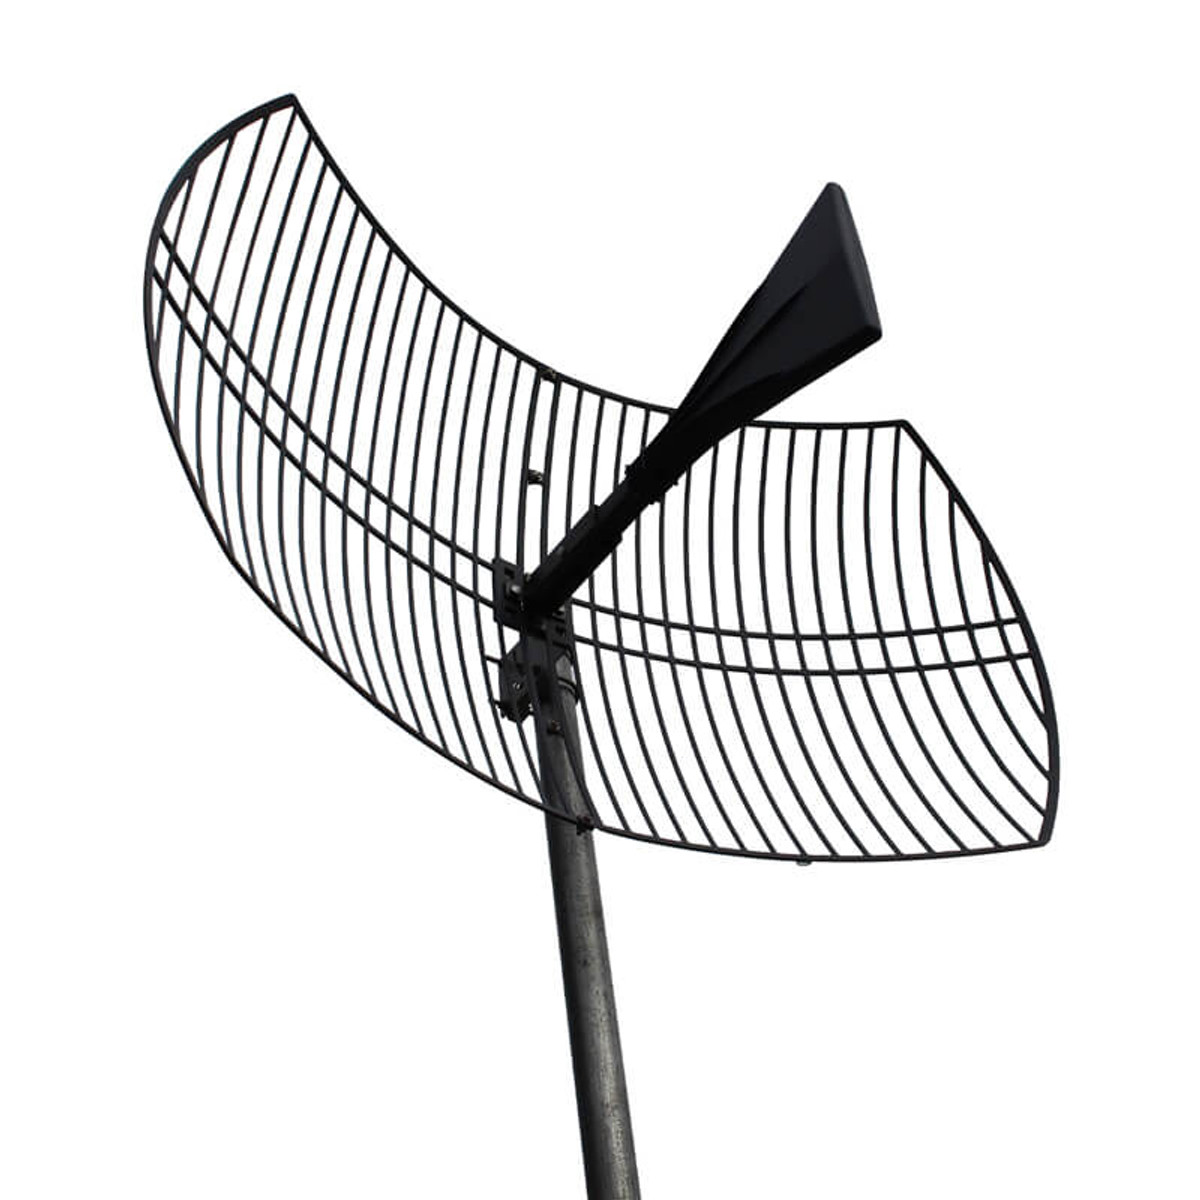 Bolton Technical UltraGain 26 Directional High Gain Cellular Antenna - Side View